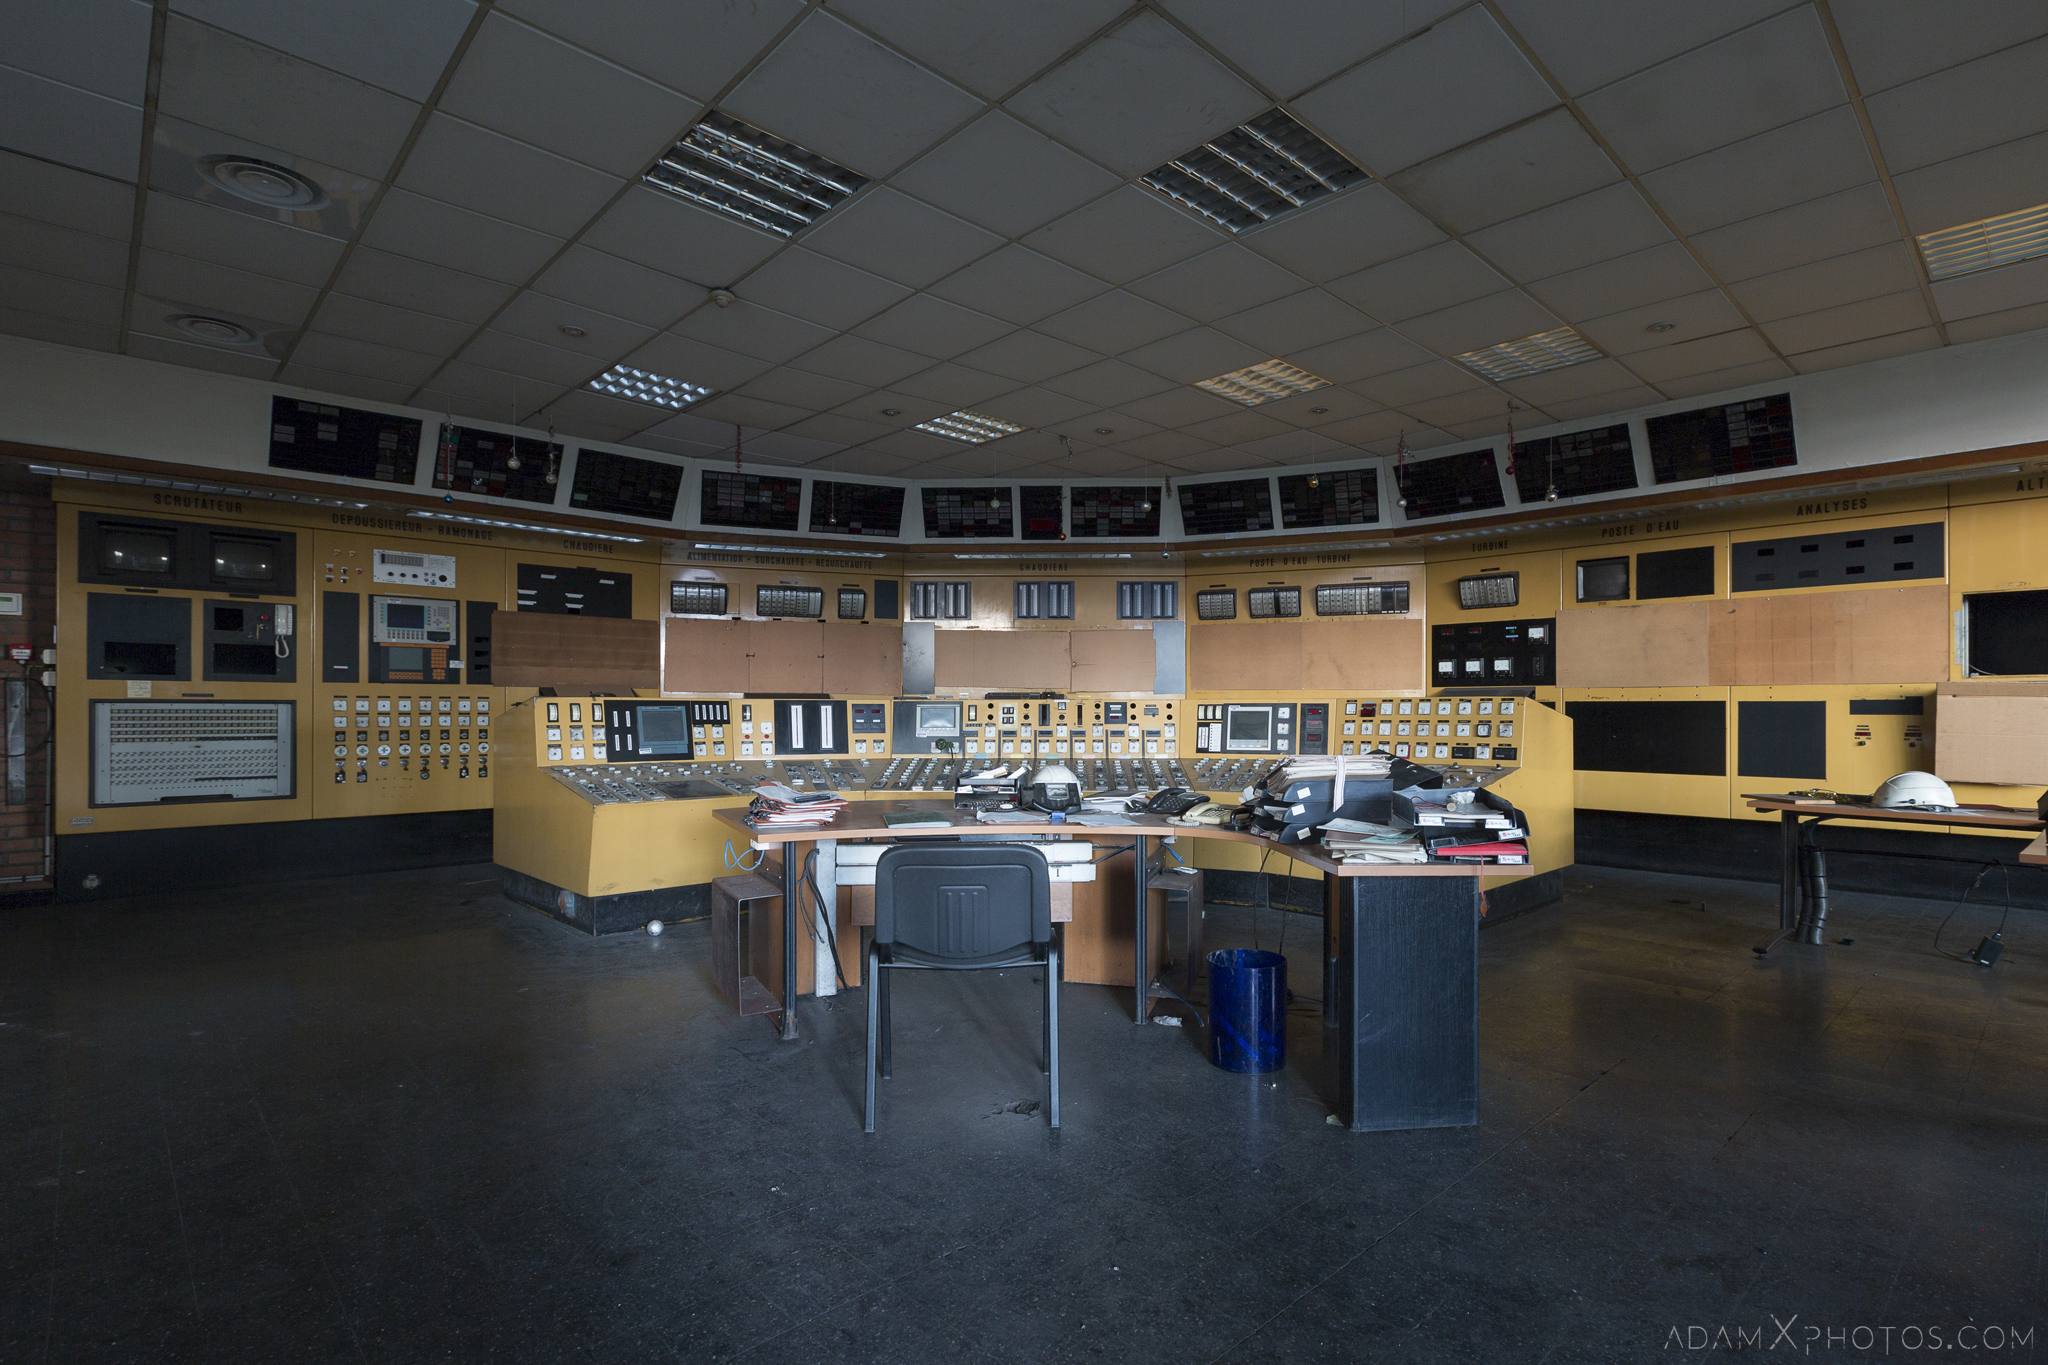 yellow control room Centrale de schneider powerplant power plant industrial industy Adam X Urban Exploration France Access 2017 Abandoned decay lost forgotten derelict location creepy haunting eerie